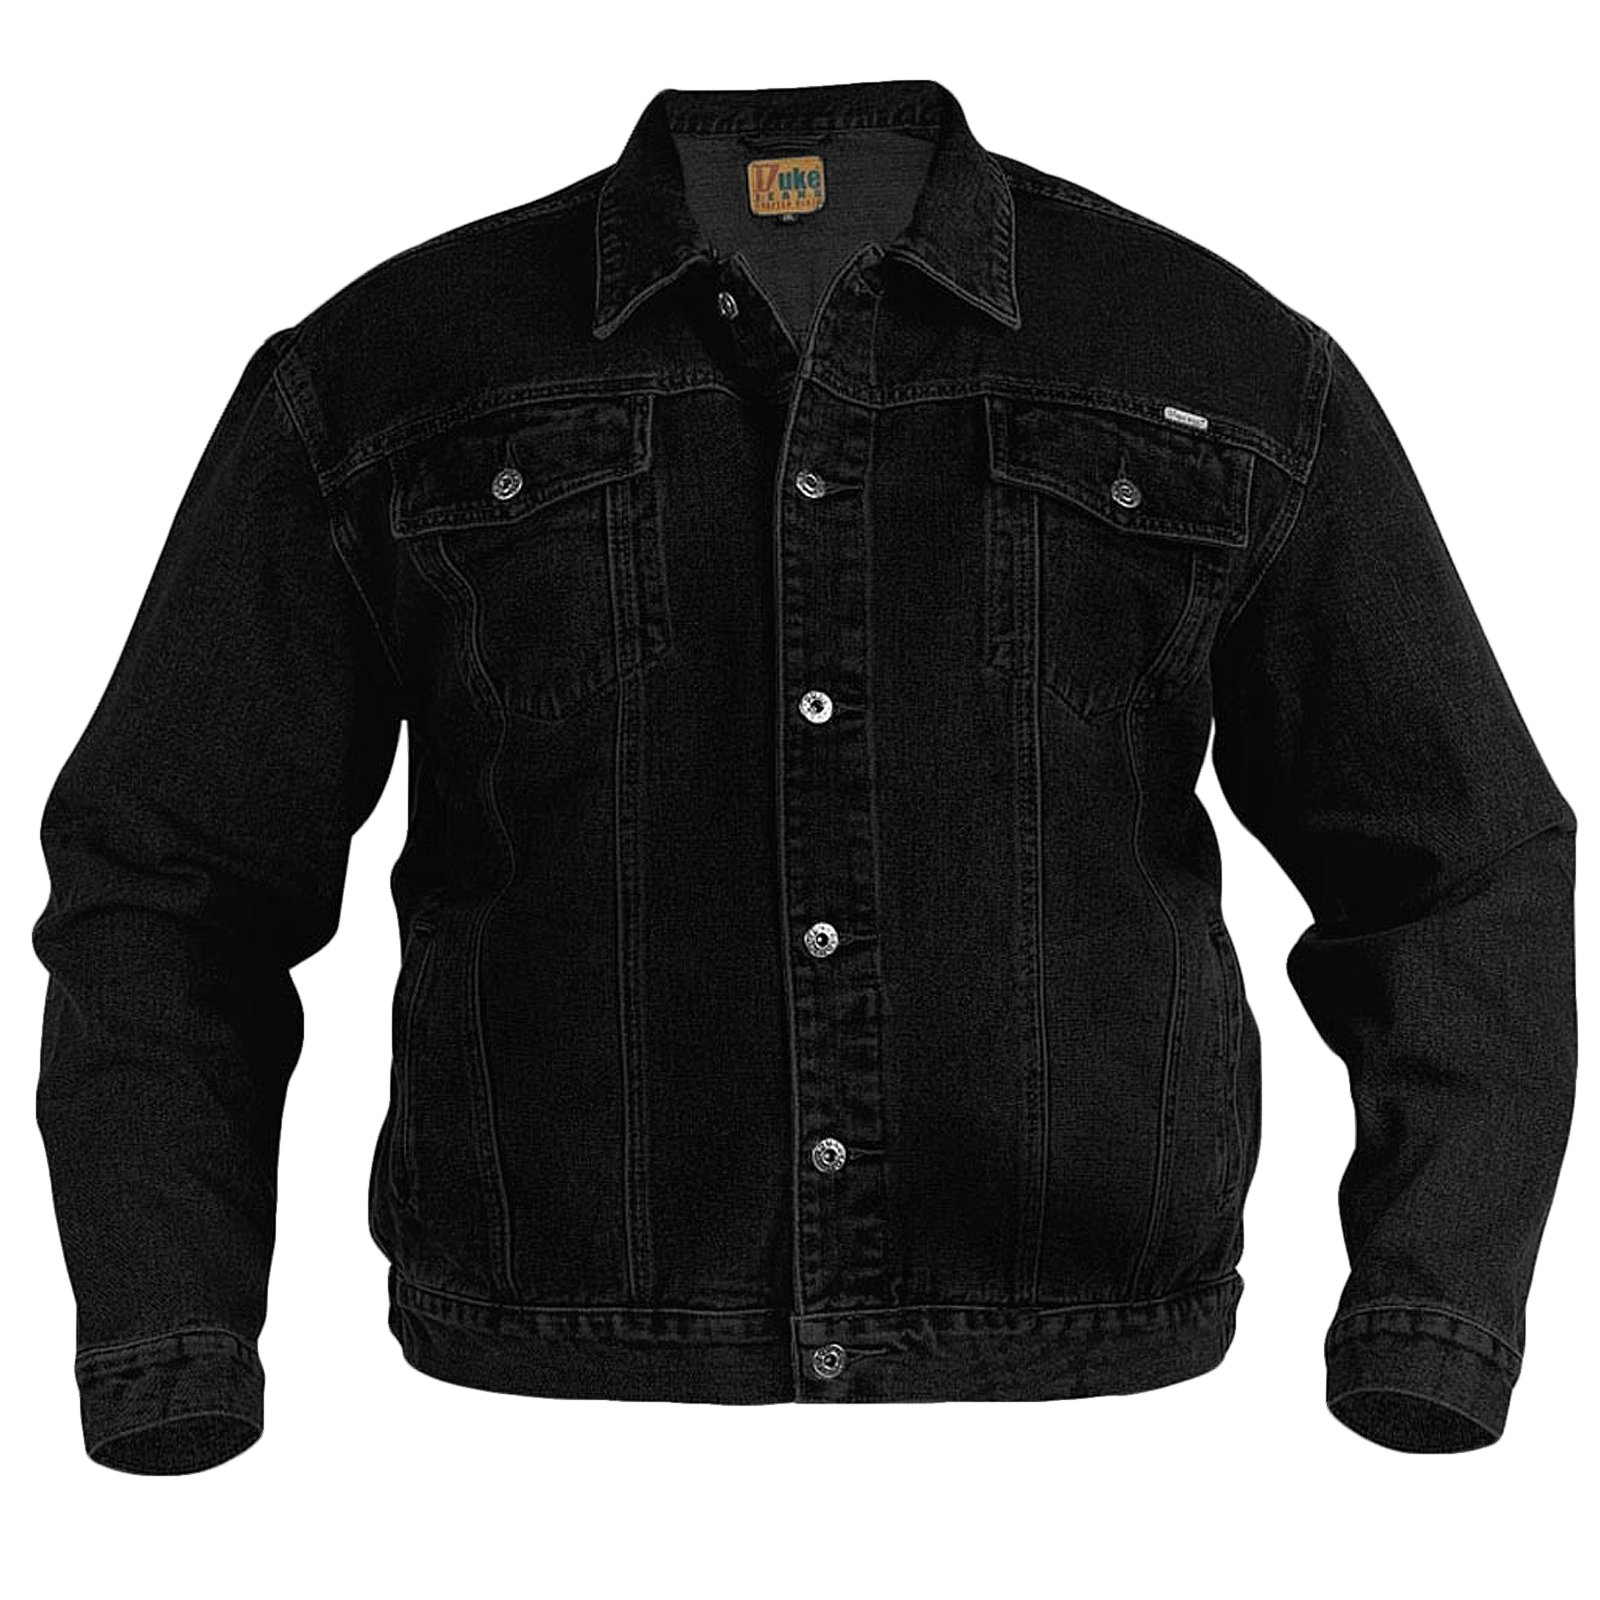 Duke D555 Big Tall Size Denim Jacket - Black - 3XL by Duke